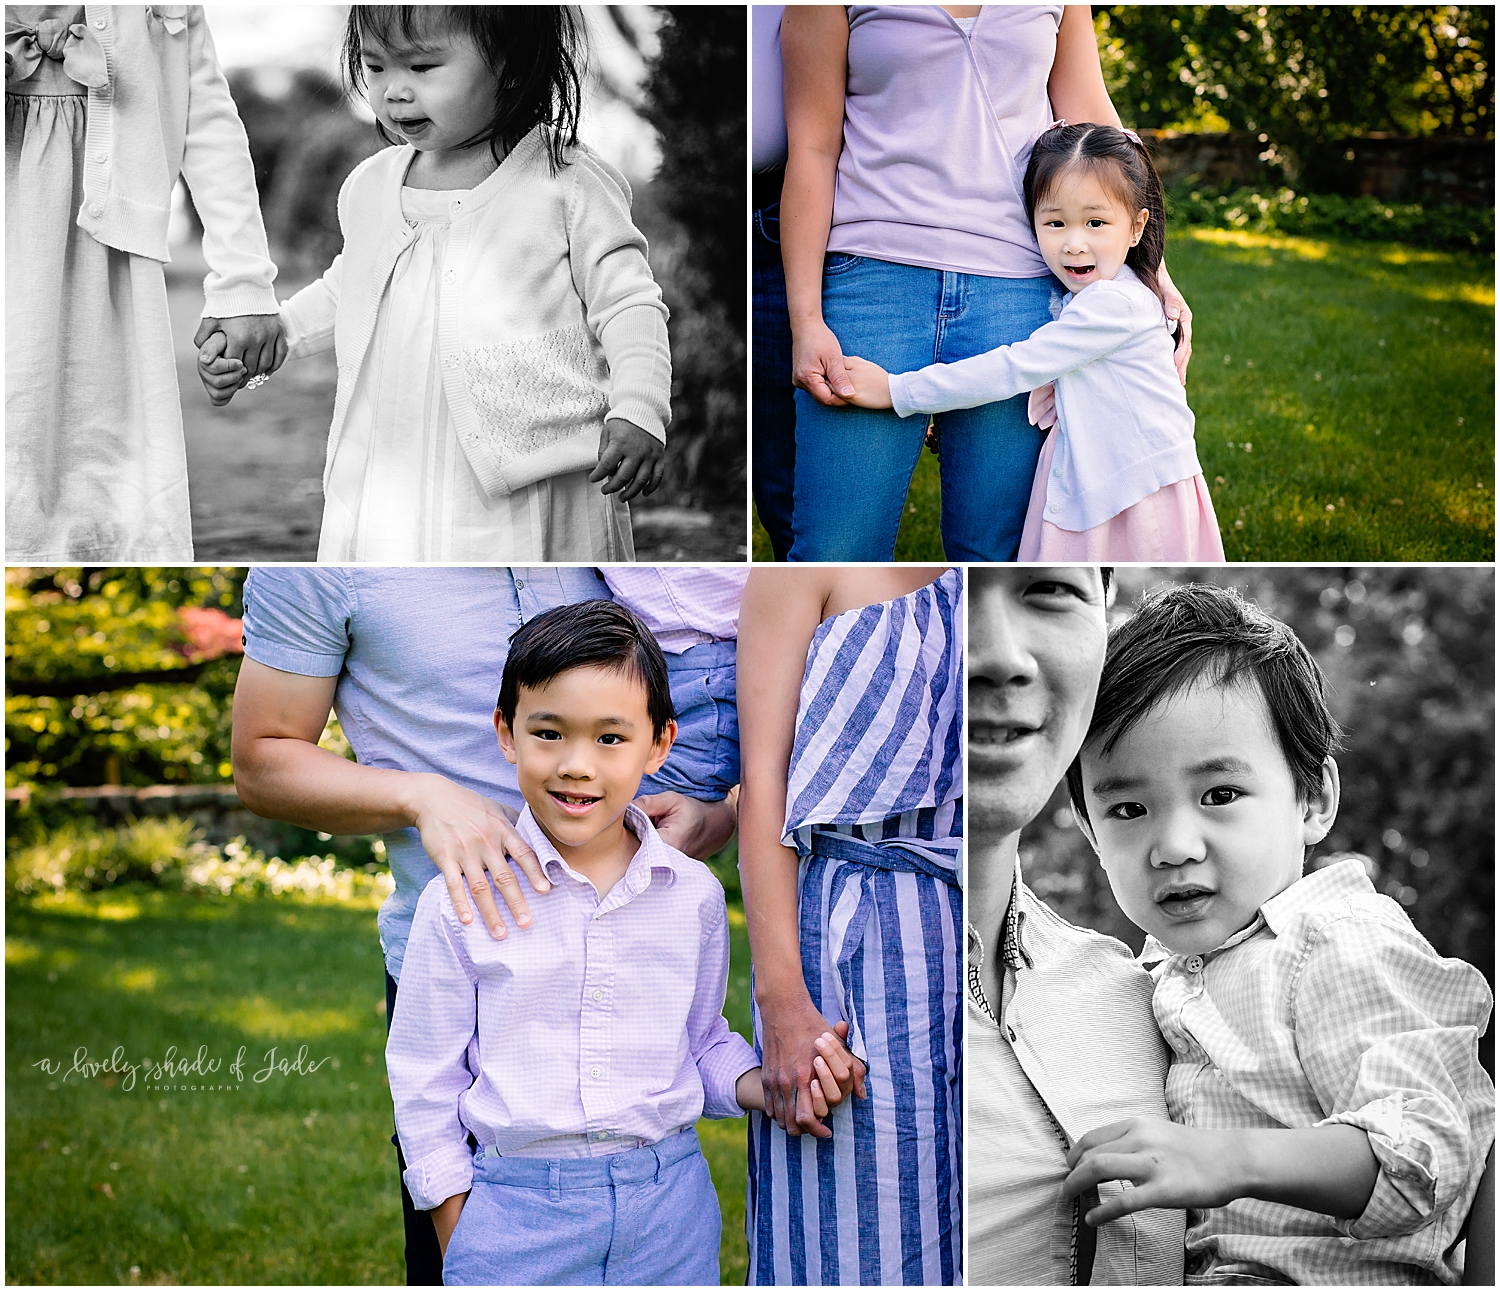 Fun_Extended_Family_Session_Morristown_NJ_Photography_0015.jpg